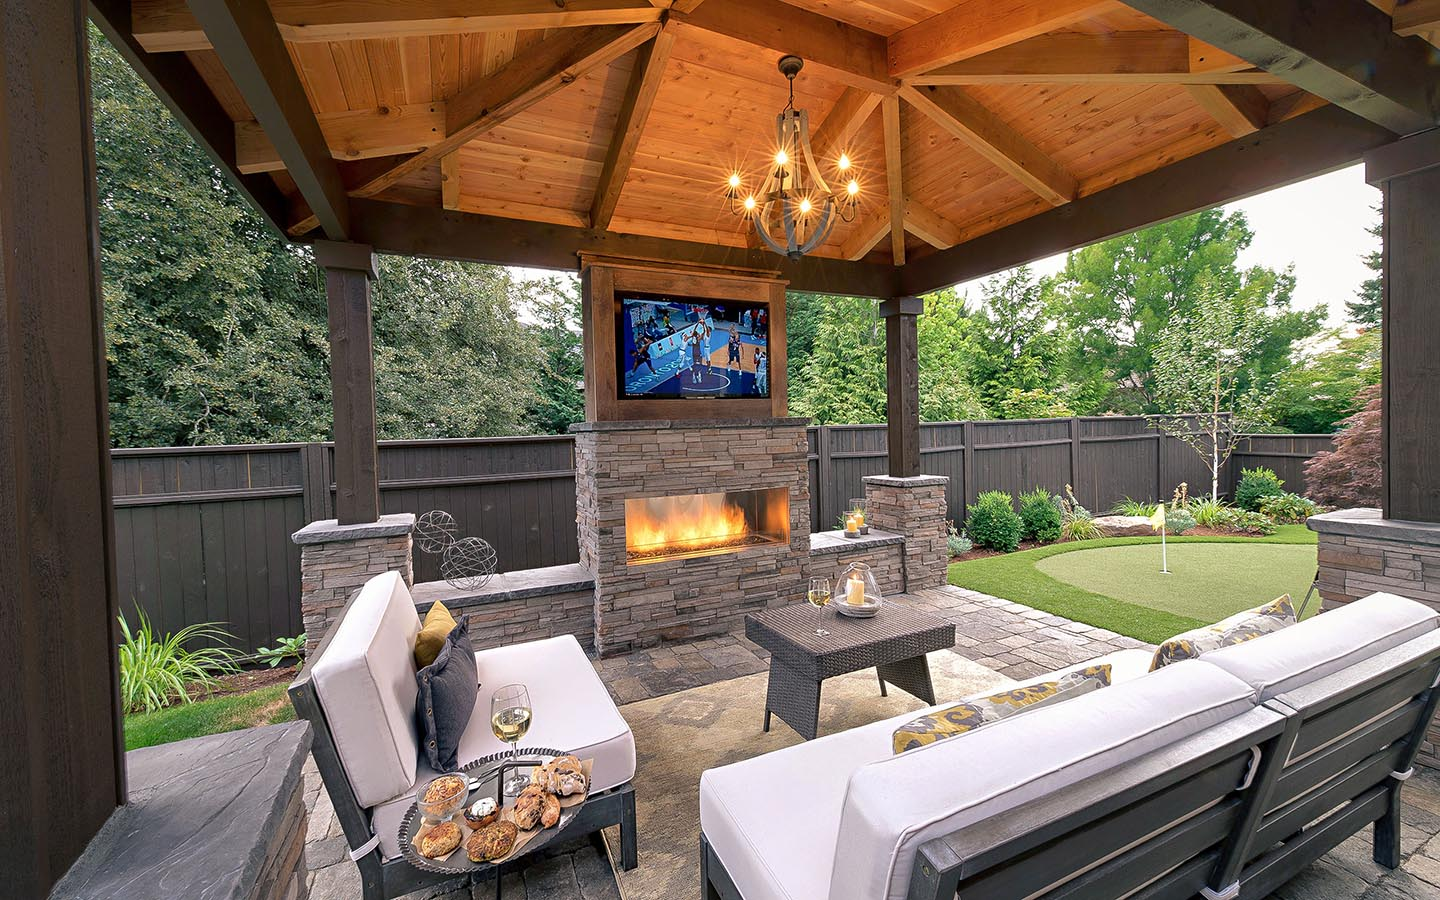 Modern rustic landscape design paradise restored landscaping for Plans for gazebo with fireplace